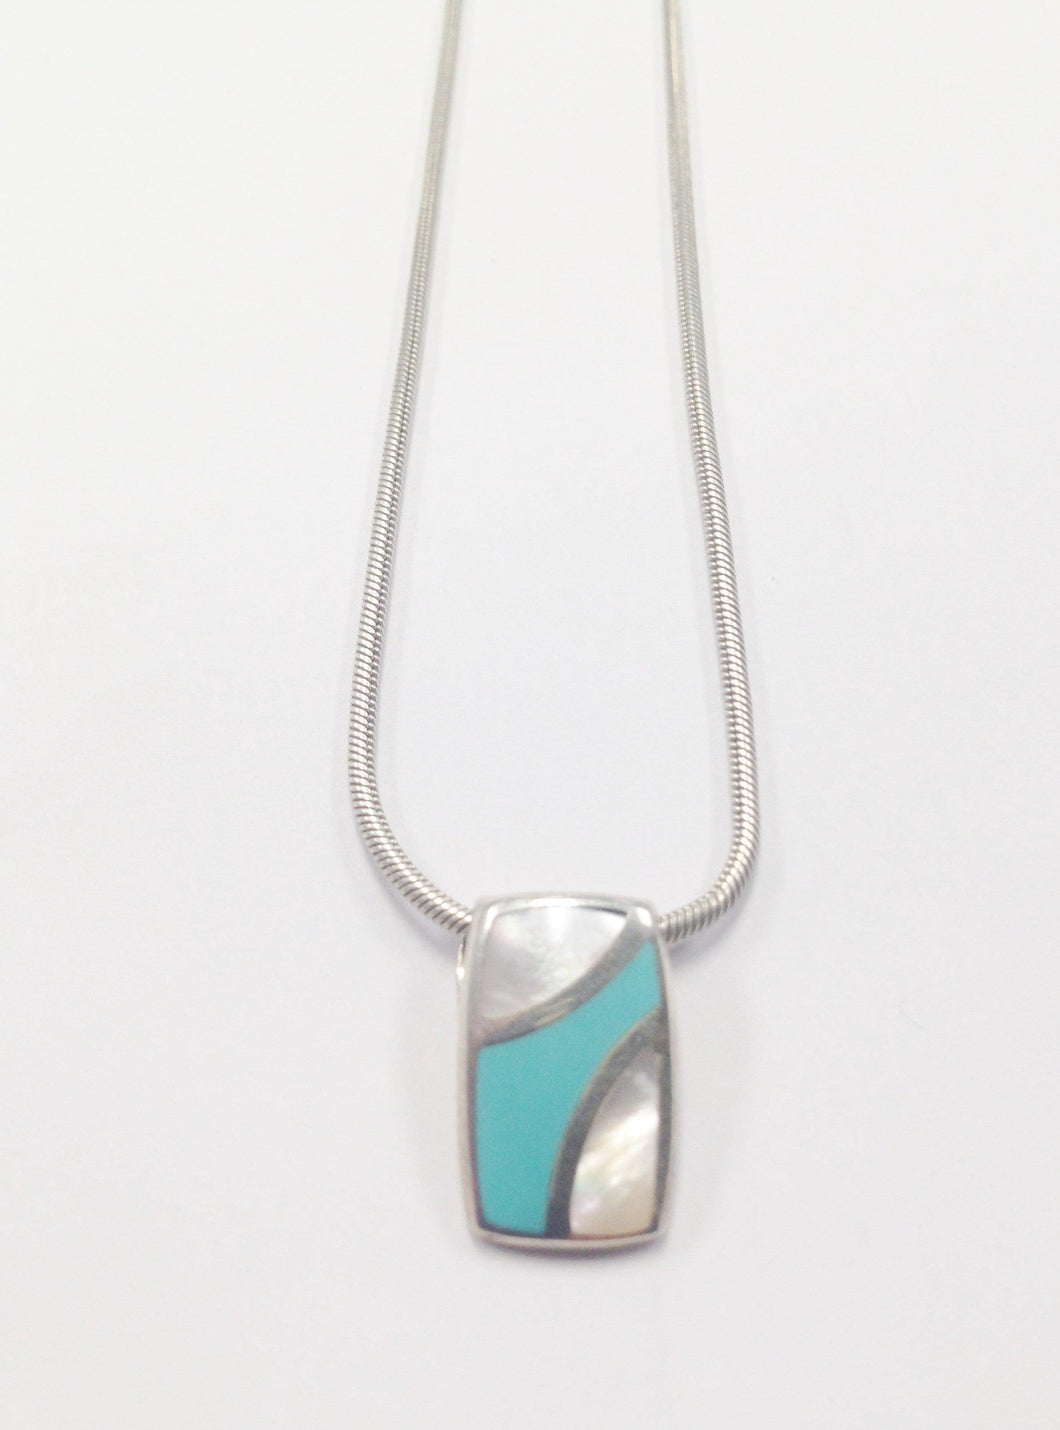 Sterling Silver Necklace W/ Turquoise and Mother of Pearl Pendant www.hersandhistreasures.com